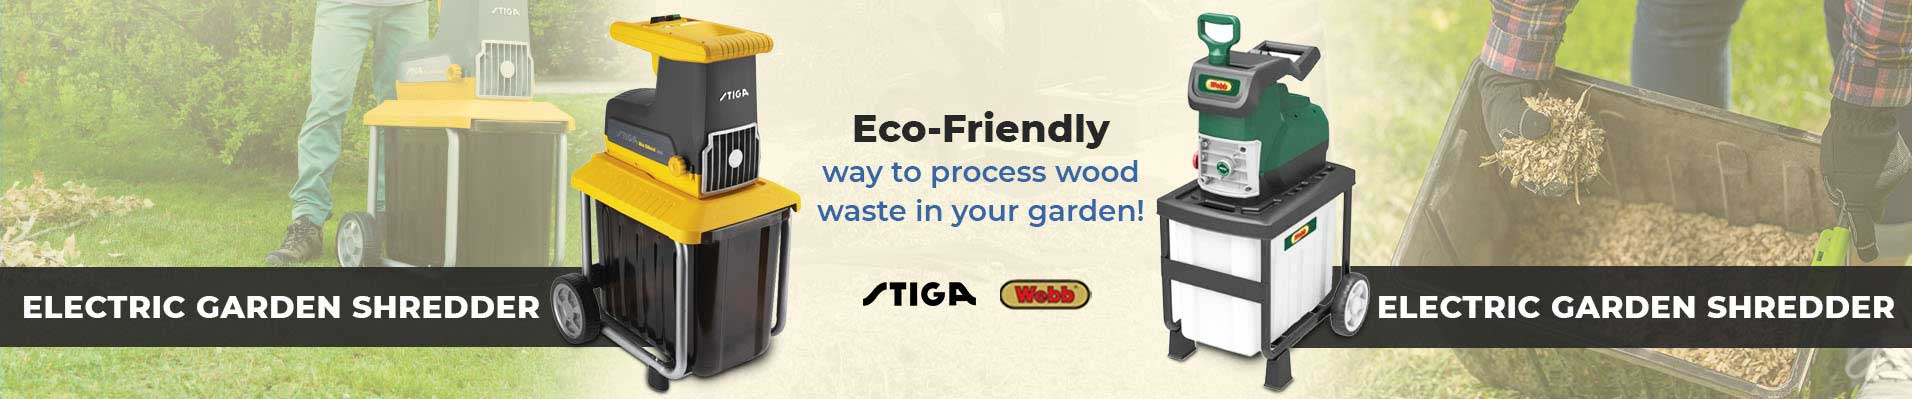 Eco-Friendly way to wood waste in your garden!